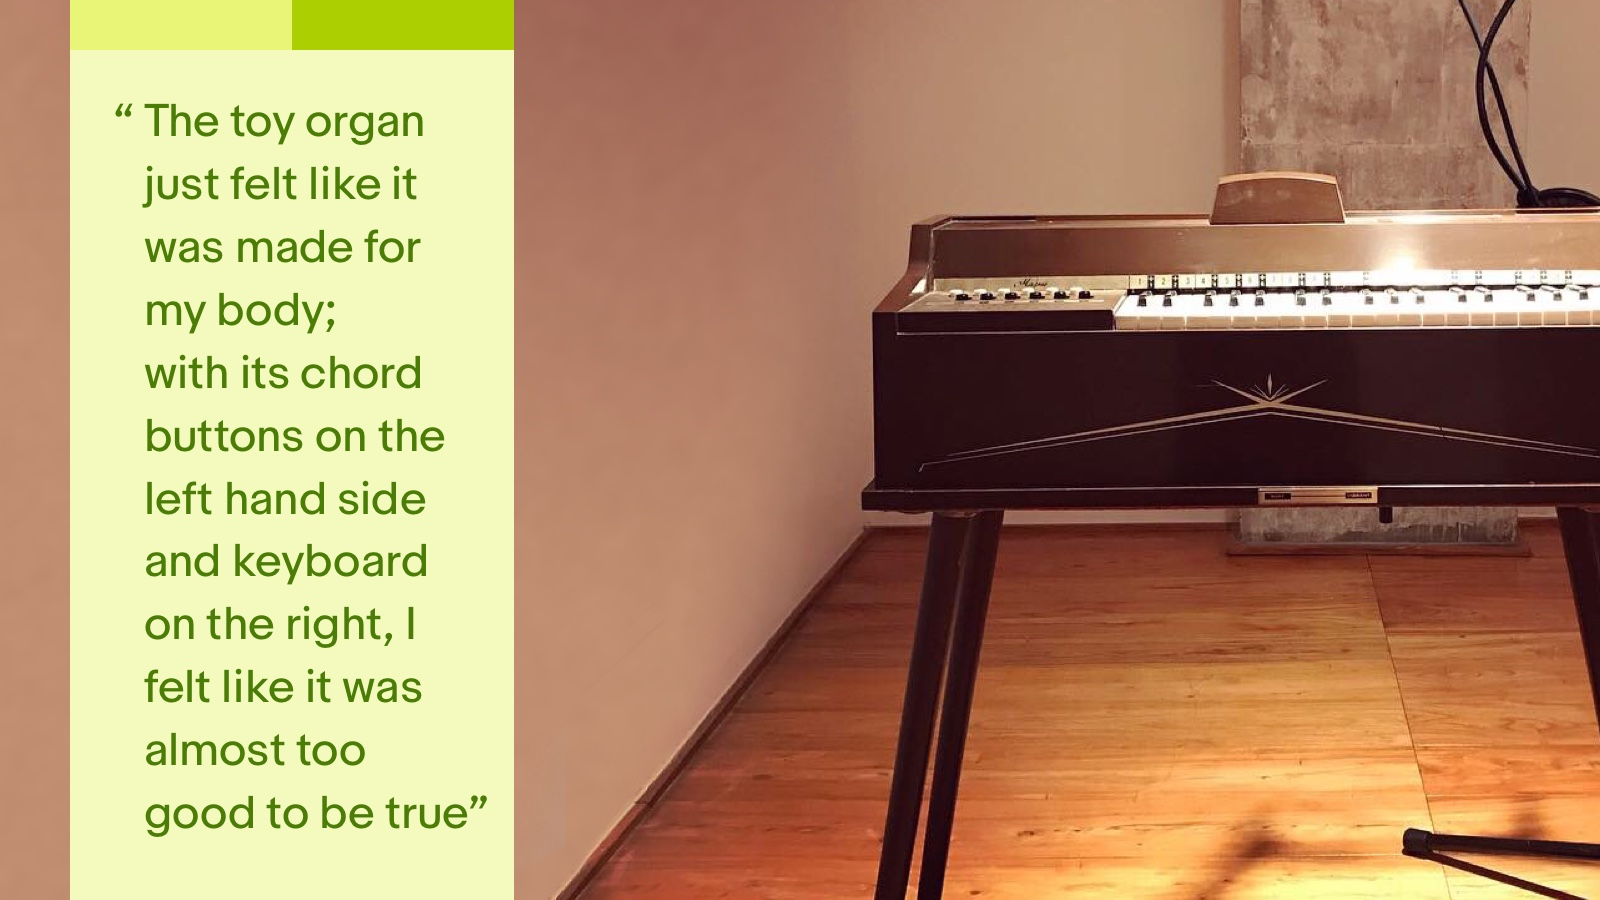 A brown vintage toy organ with gold decal stands on a brown wood floor in a hotel room in Shanghai, China.